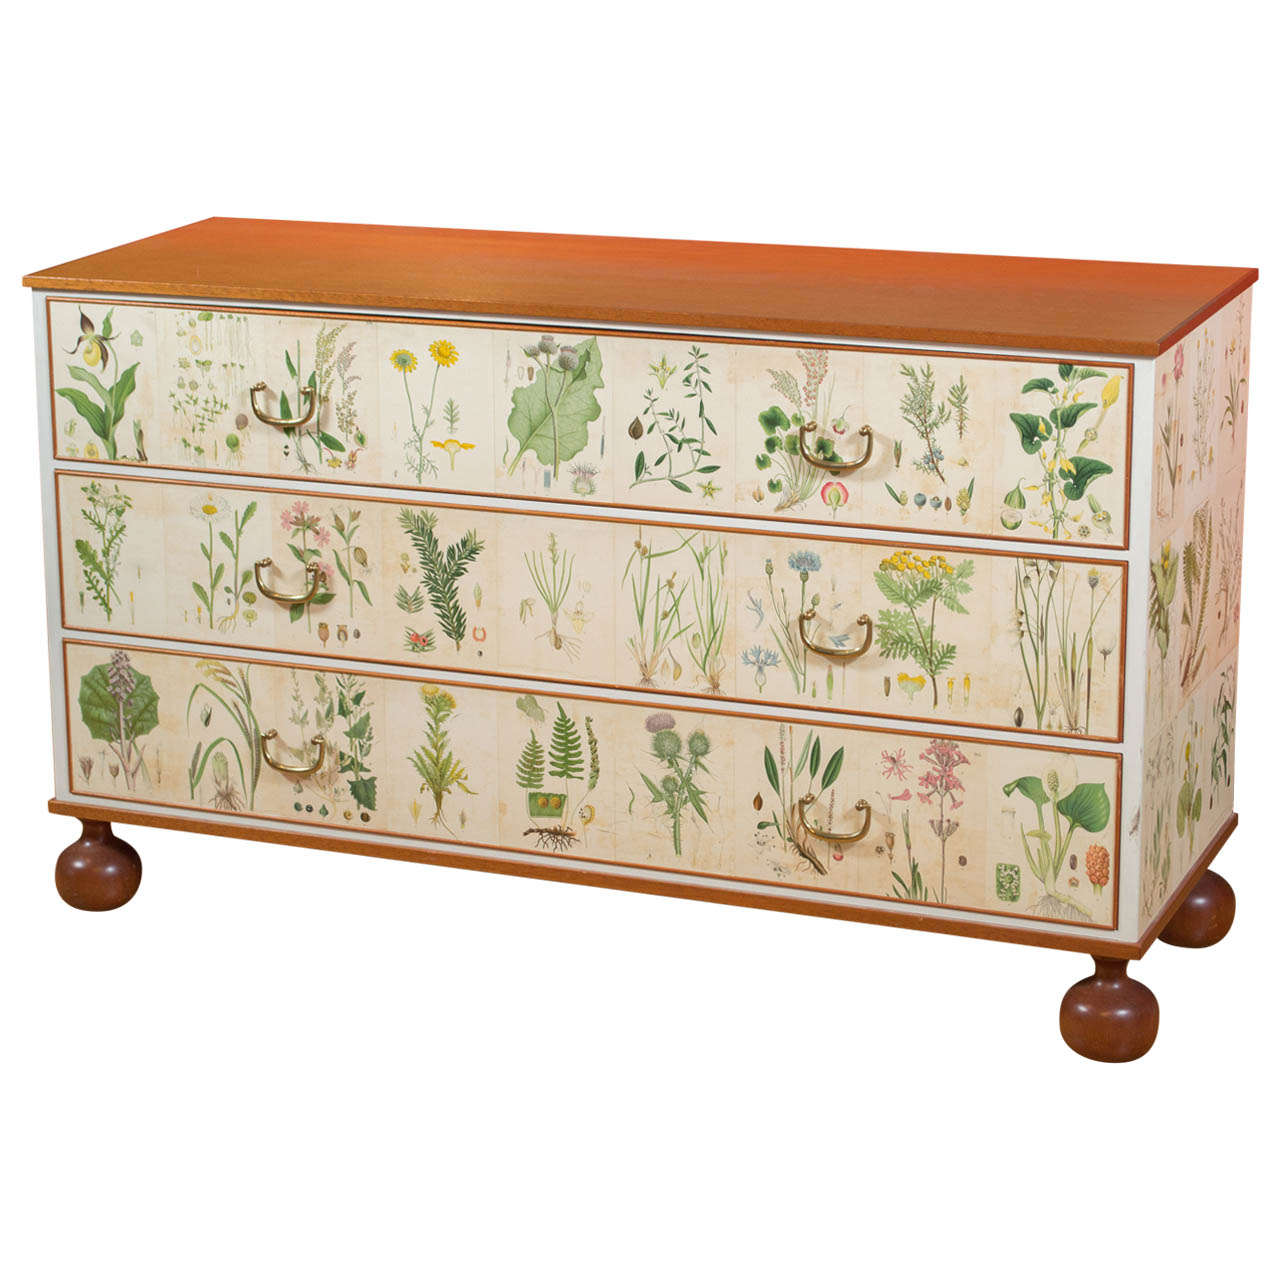 Josef Frank, Chest of Drawers